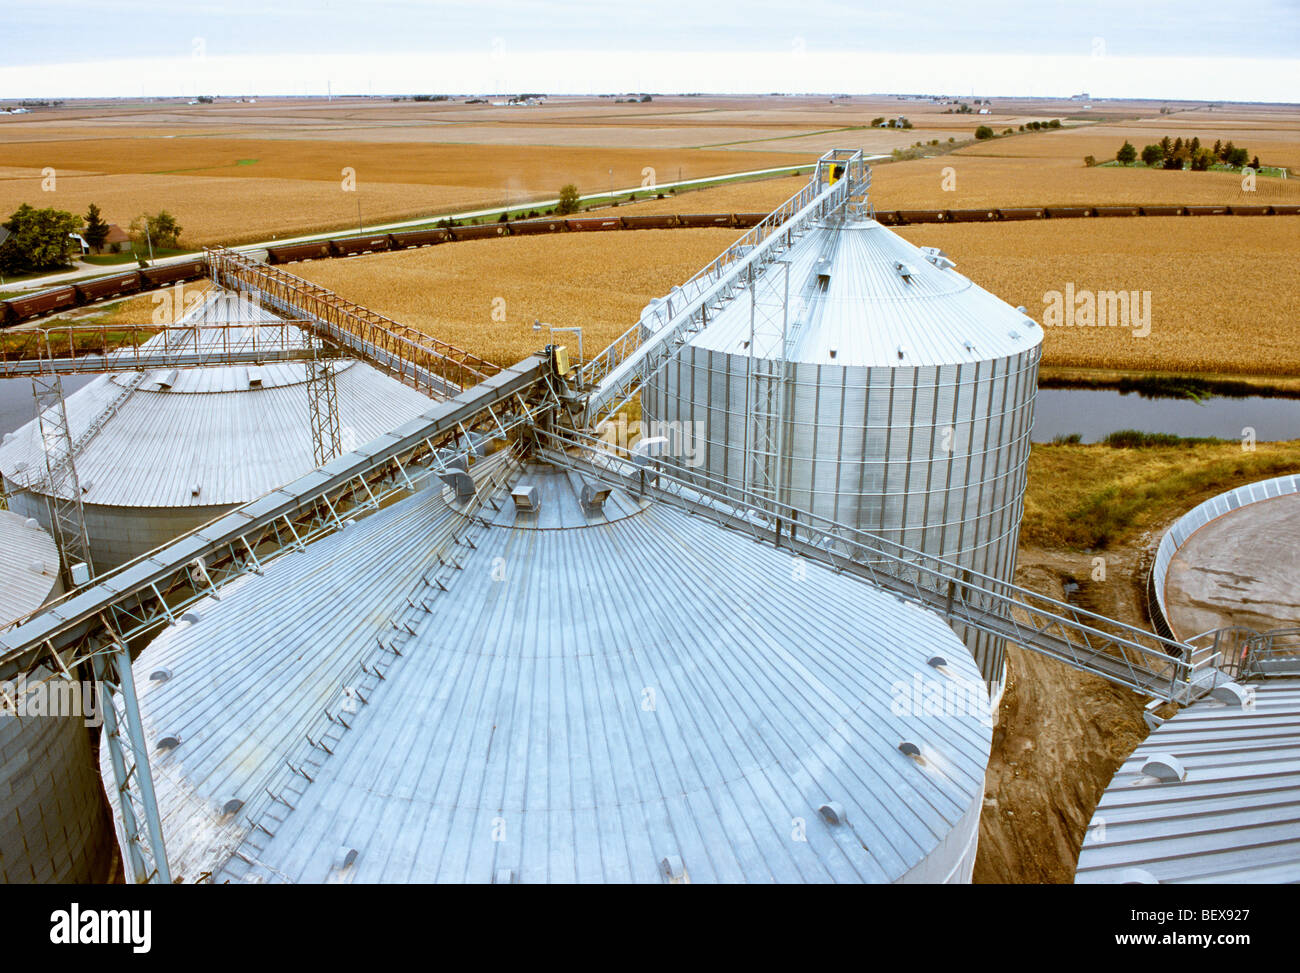 Tops of grain bins with associated conveyors and catwalks